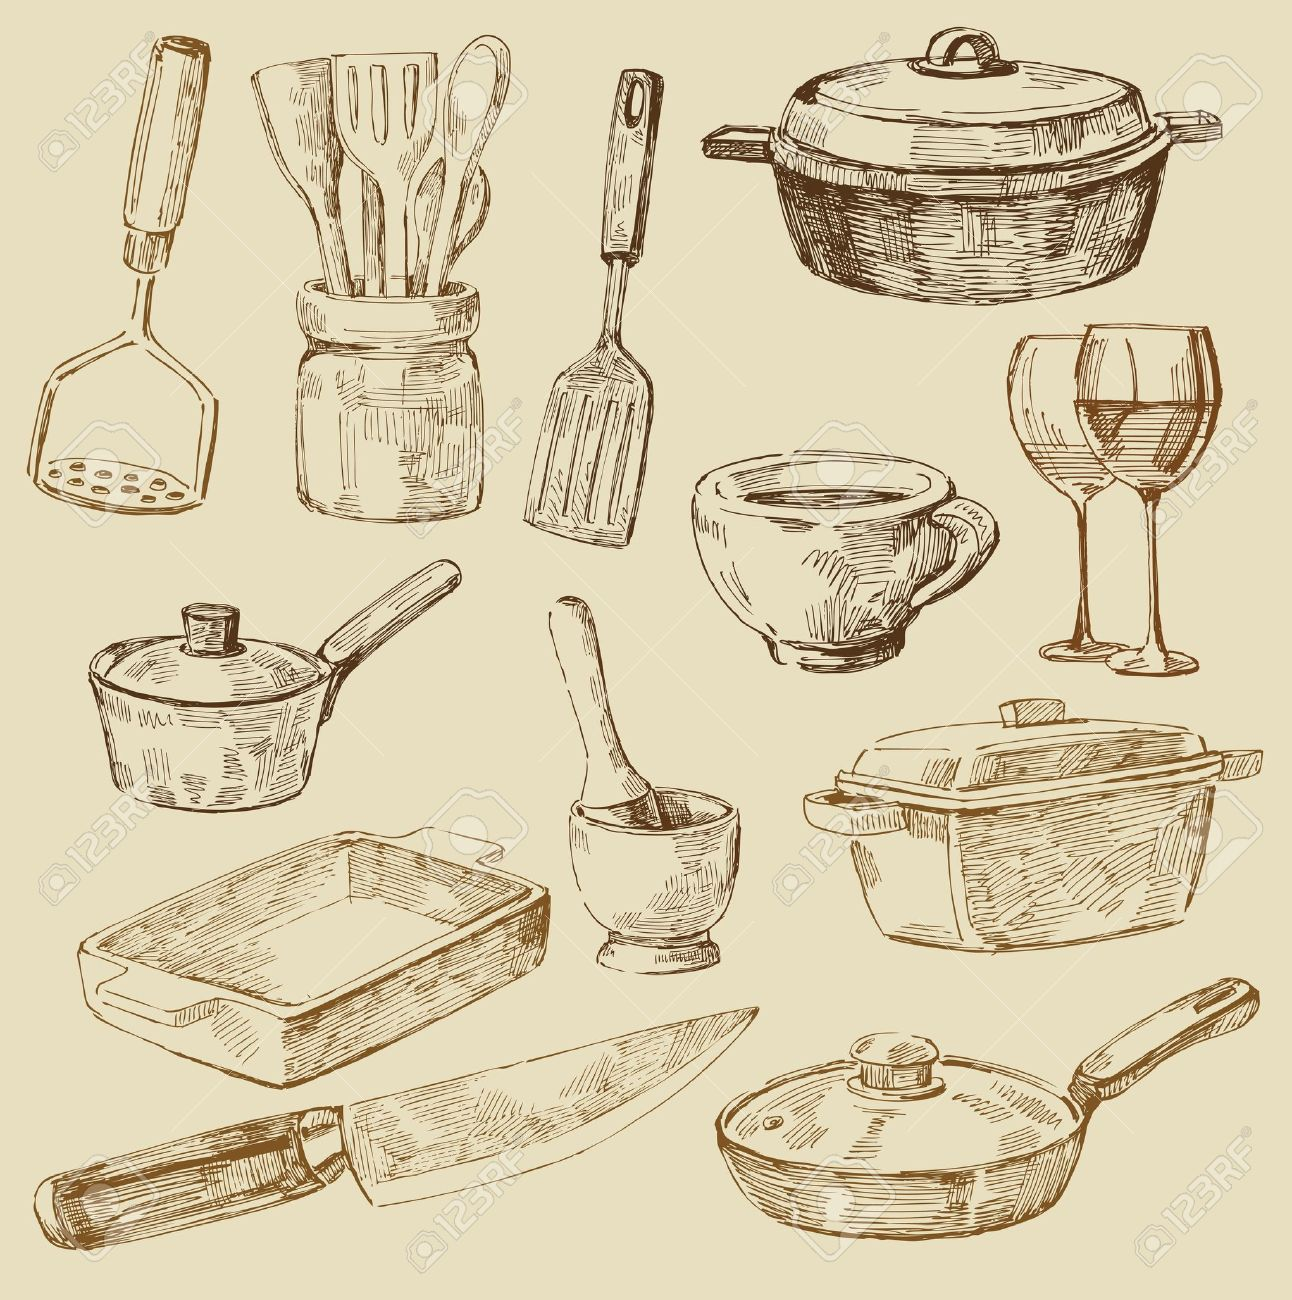 Kitchen Tools Drawings Cooking Doodles Royalty Free Cliparts Vectors And Stock